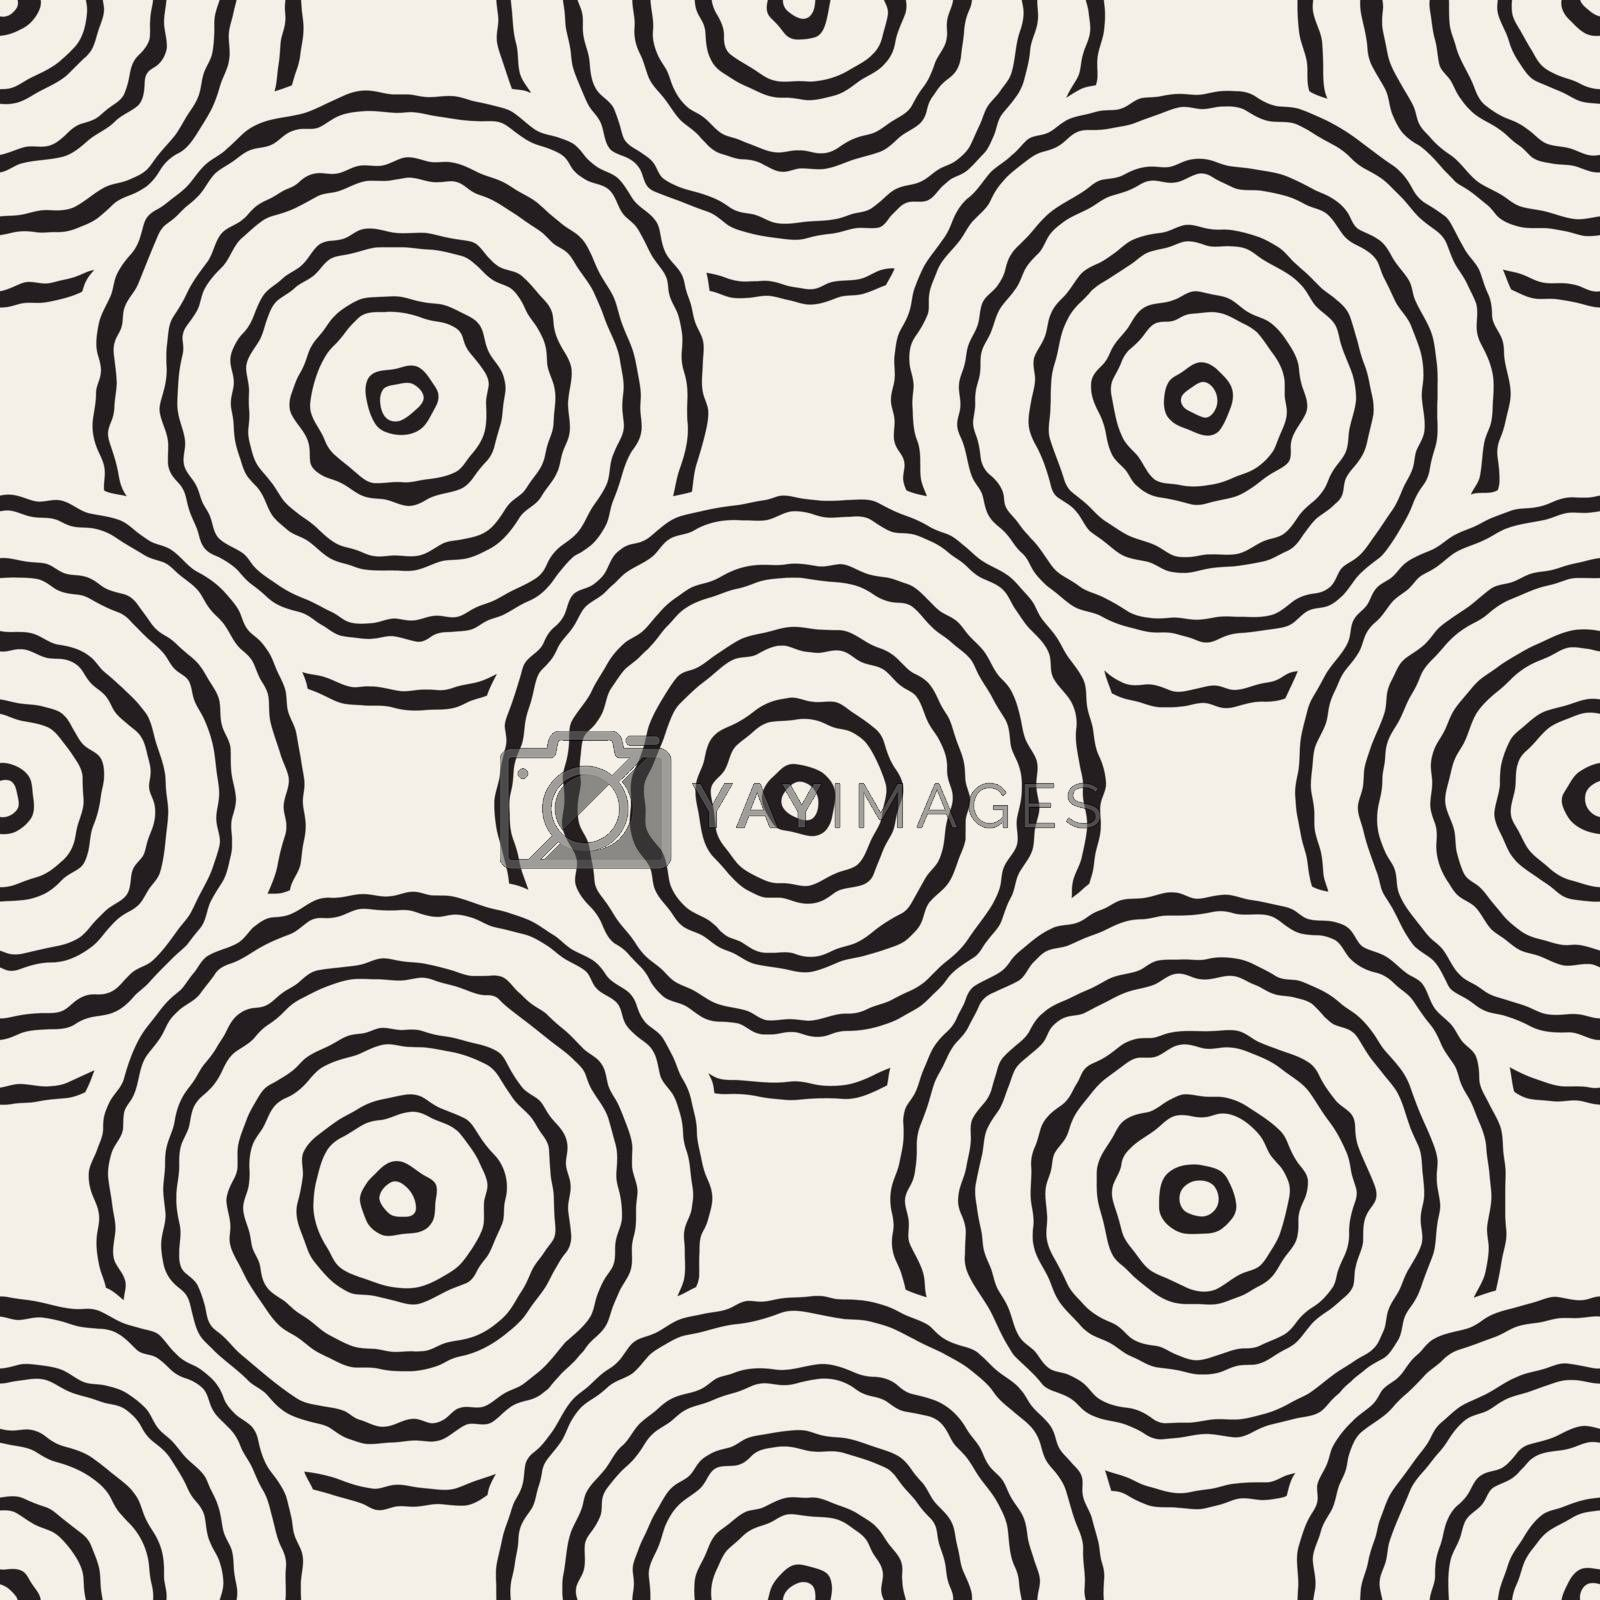 Vector Seamless Black And White Freehand Concentric Circles Pattern. Abstract Freehand Background Design